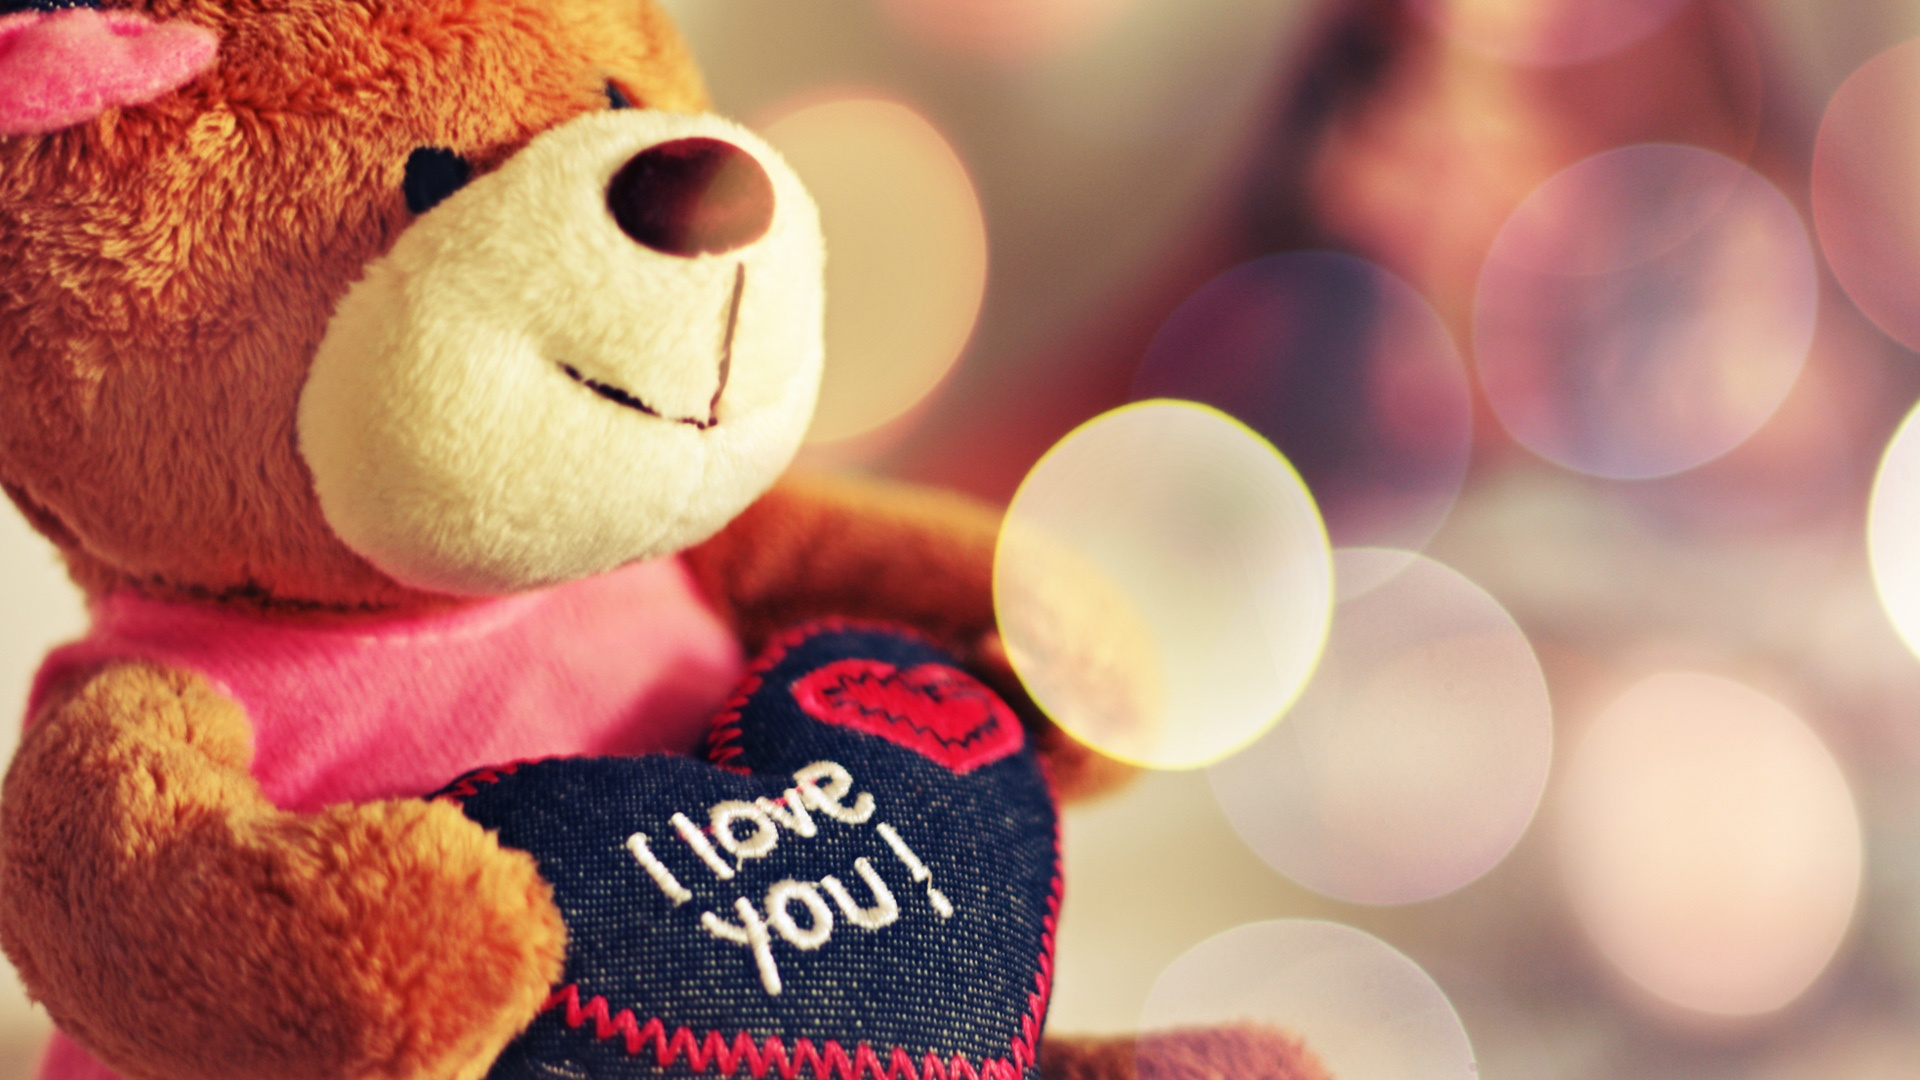 Hd wallpaper love download - I Love You Wallpapers Hd A43